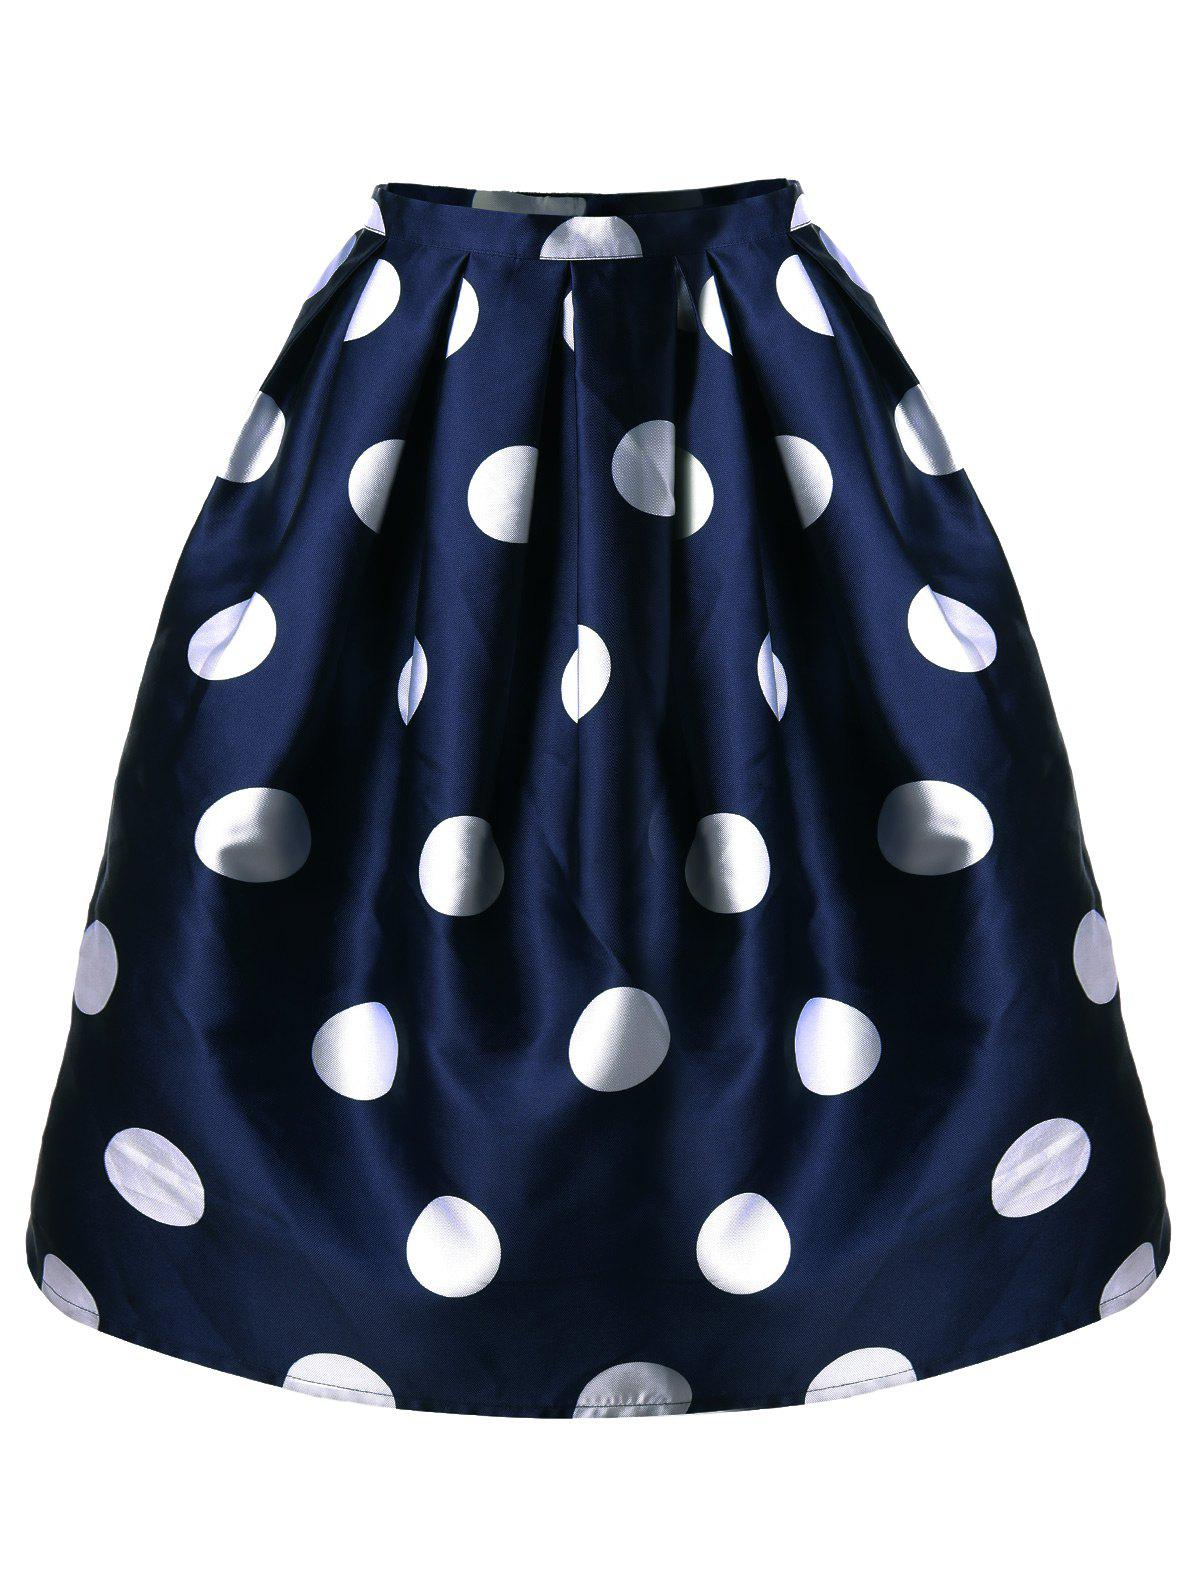 Polka Dot Mini A Line Skirt - CADETBLUE L